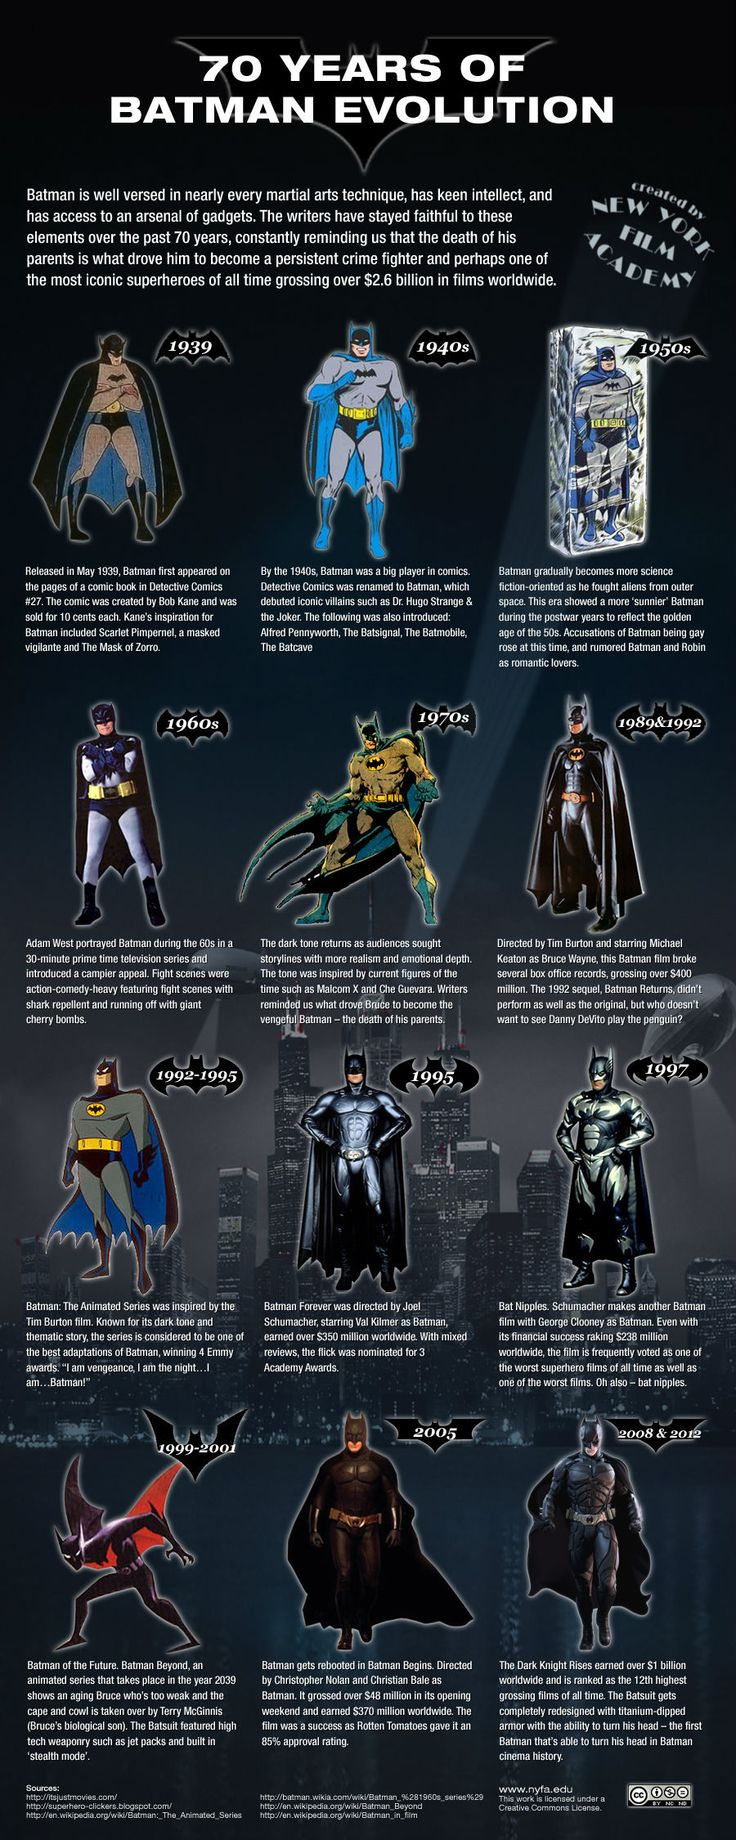 Batman Over Time: The Superhero's Evolution From 1939 to 2012 #infographic